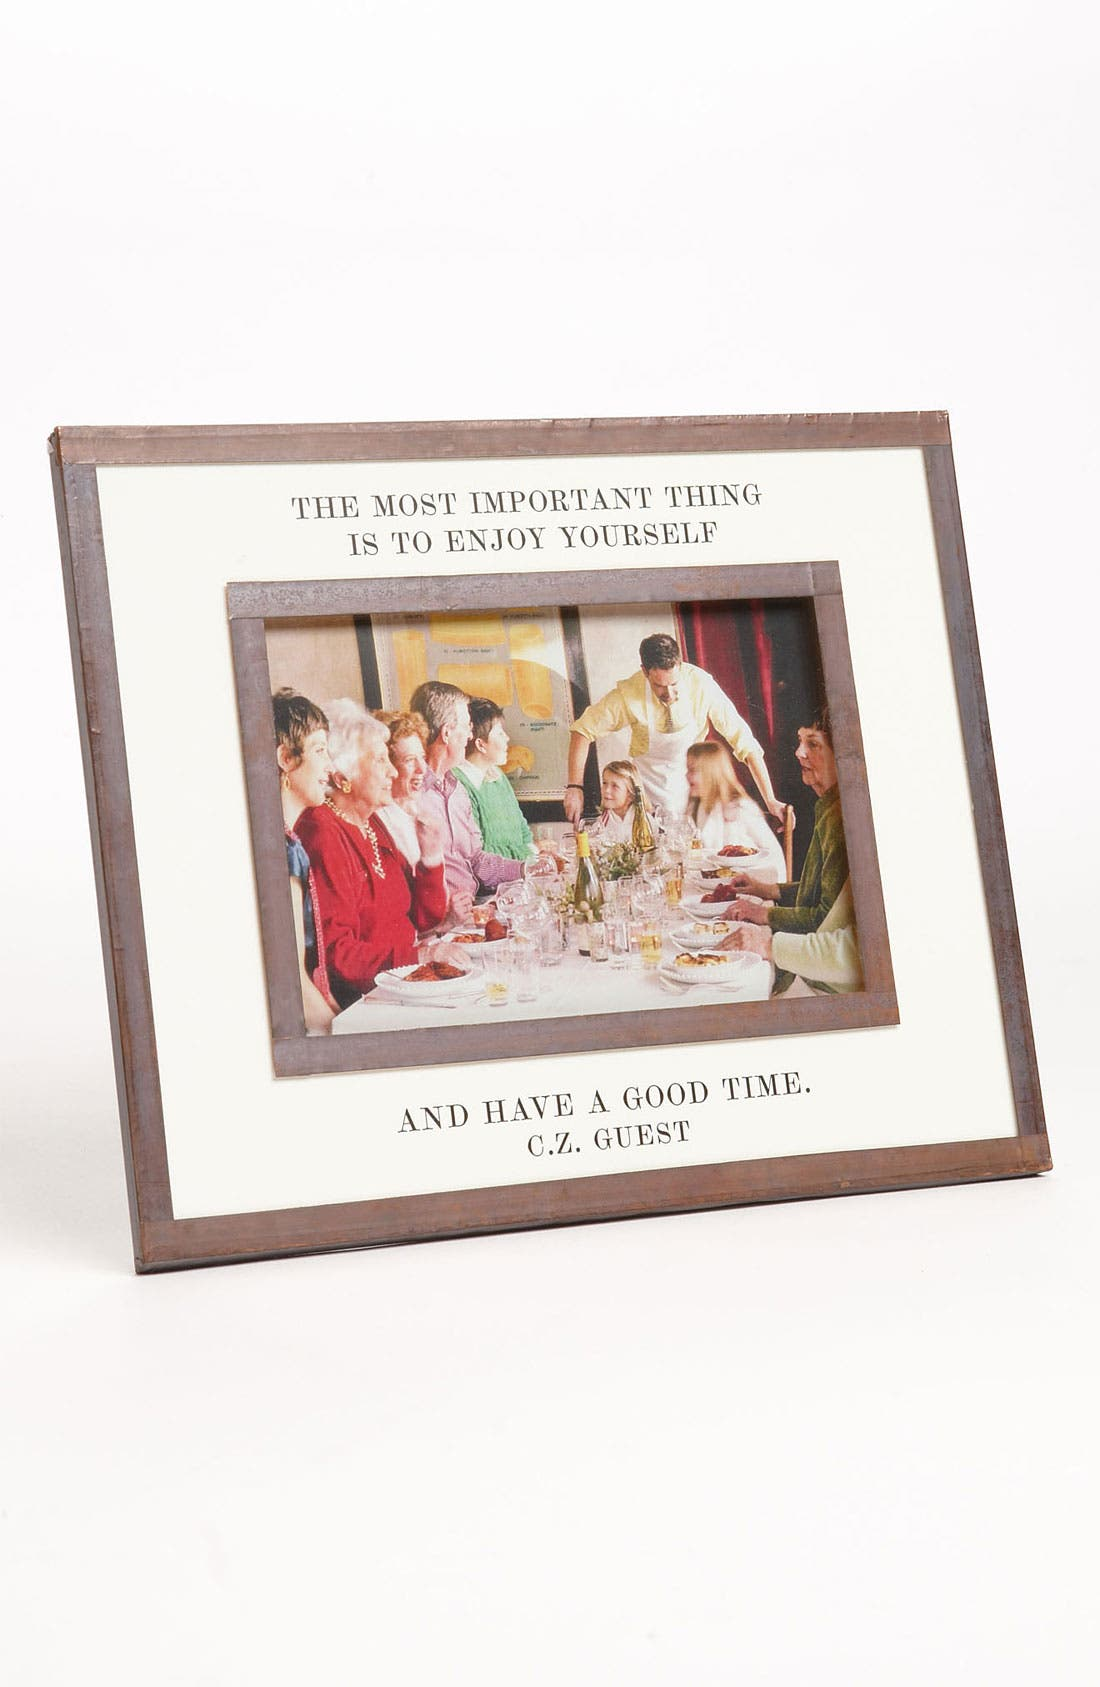 Alternate Image 1 Selected - Ben's Garden 'The Most Important Thing' Picture Frame (4x6)